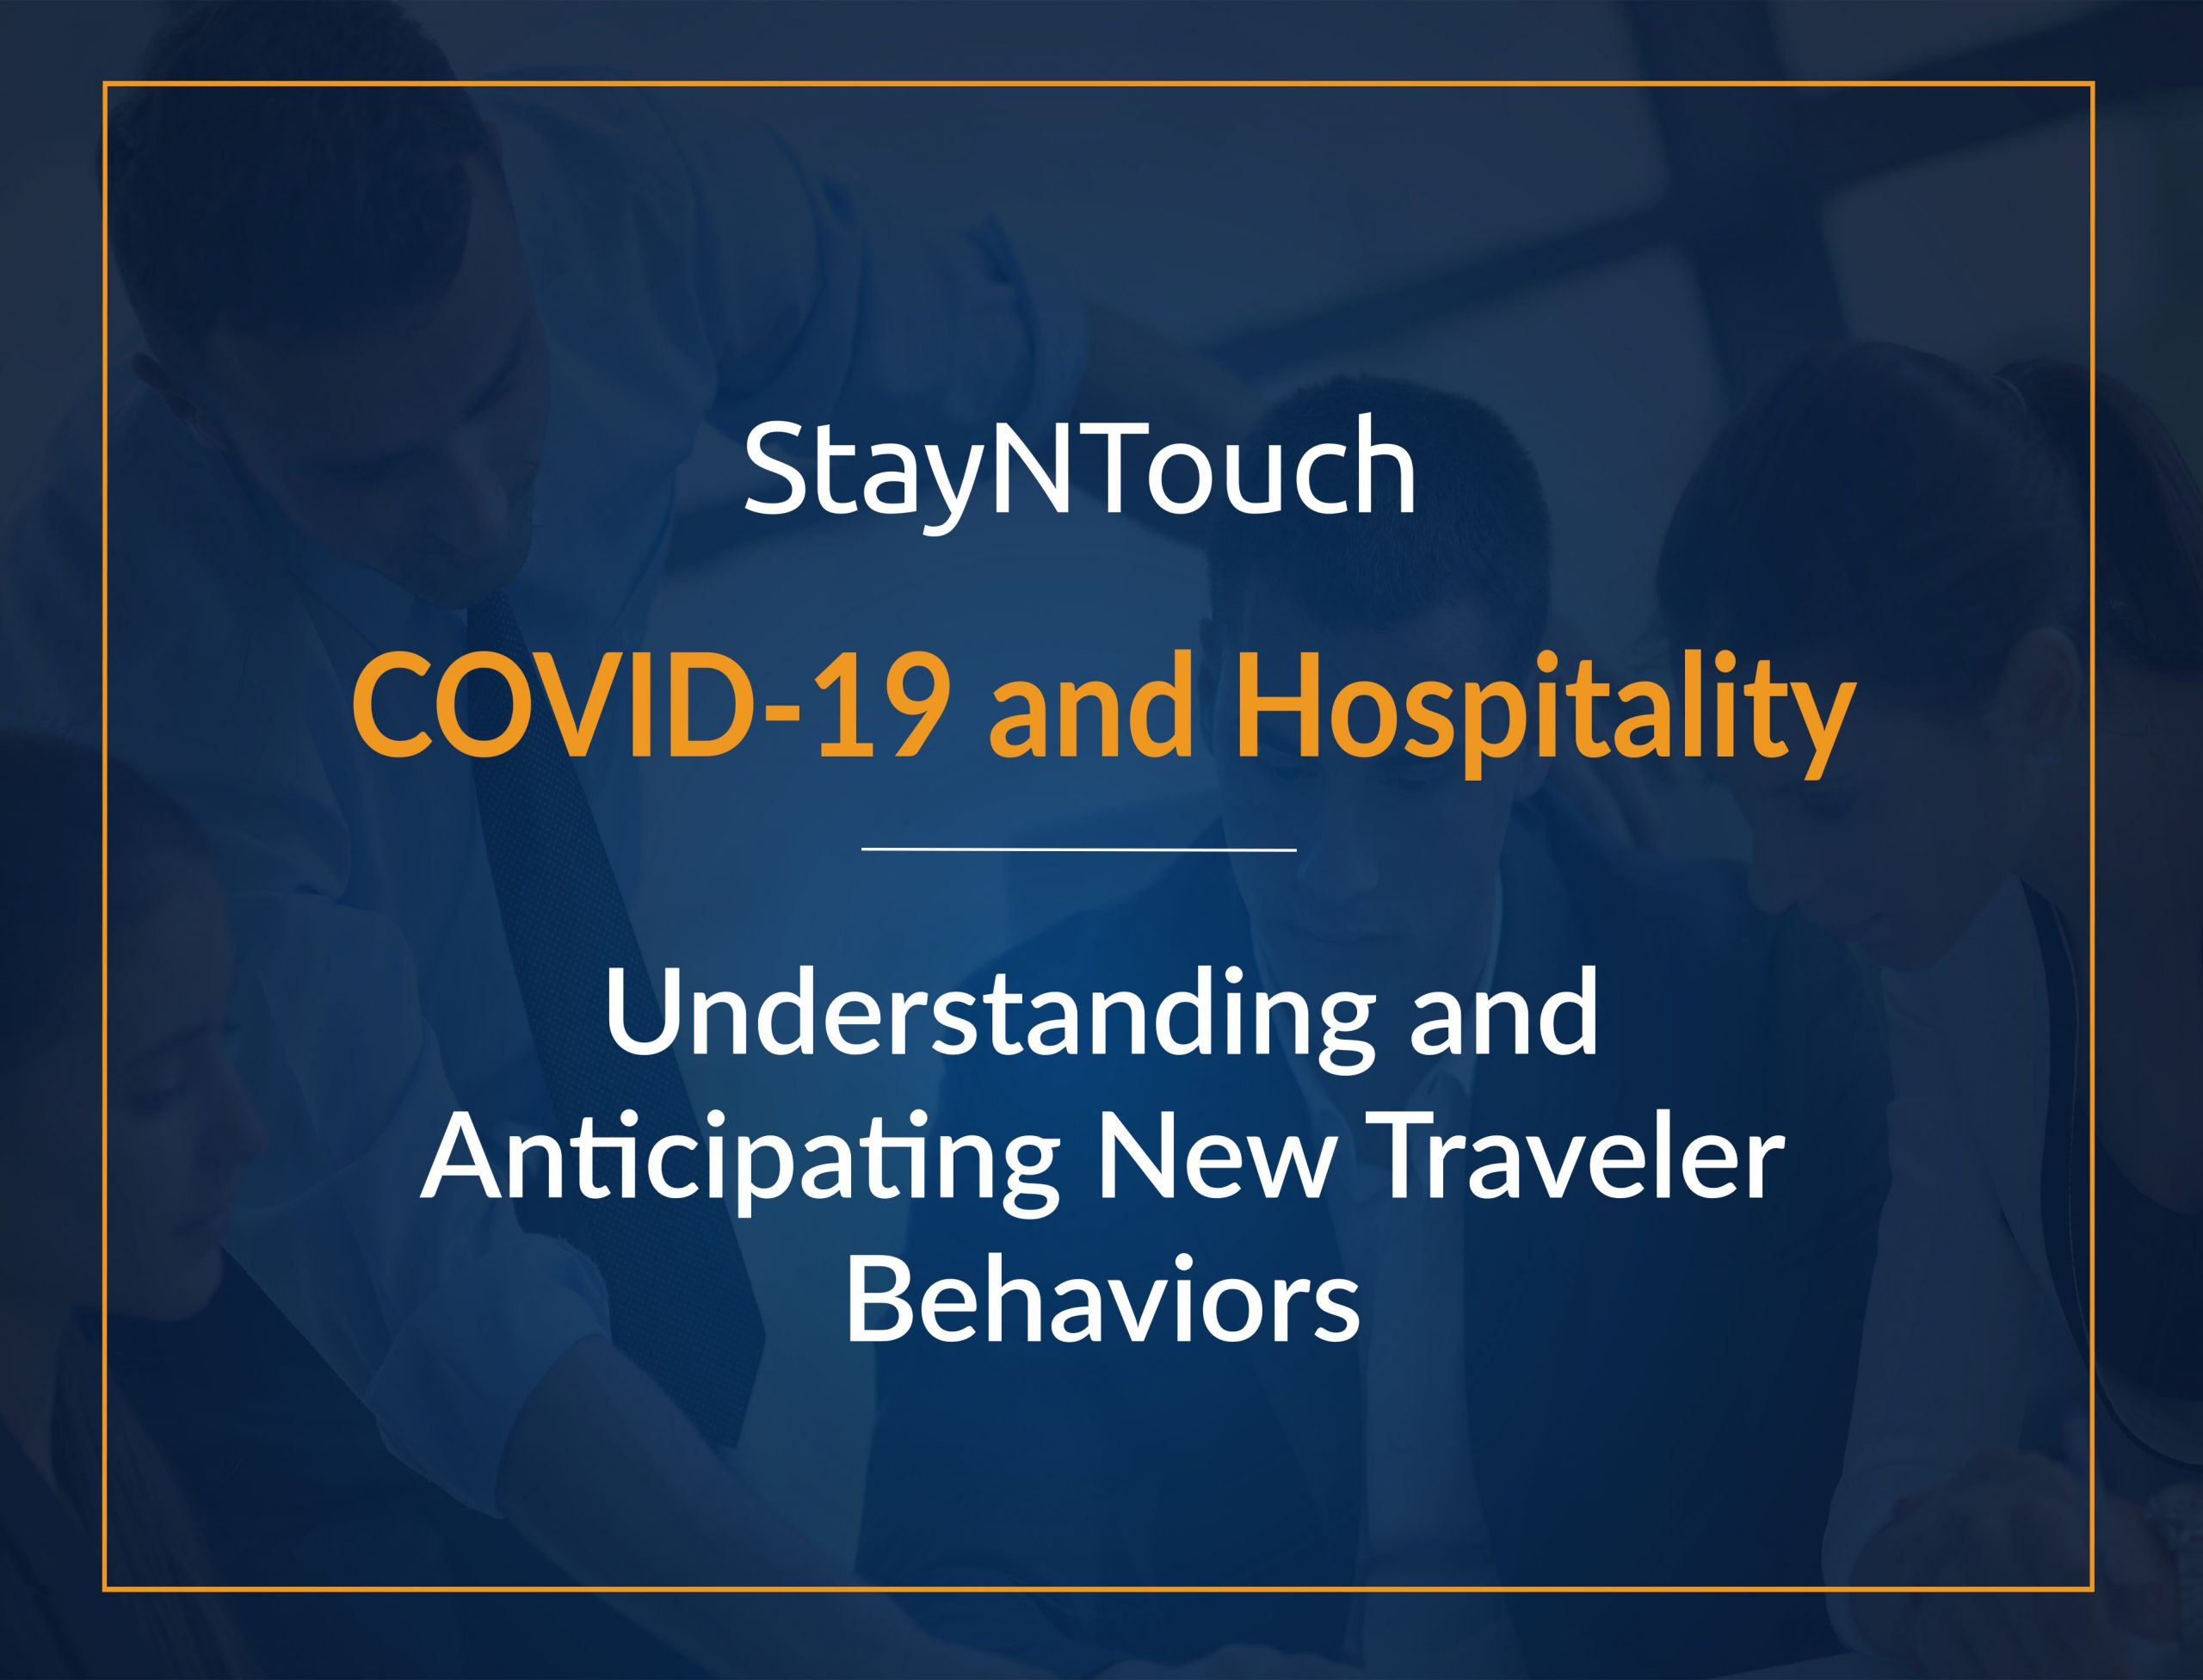 COVID-19 and Hospitality: Understanding and Anticipating New Traveler Behaviors